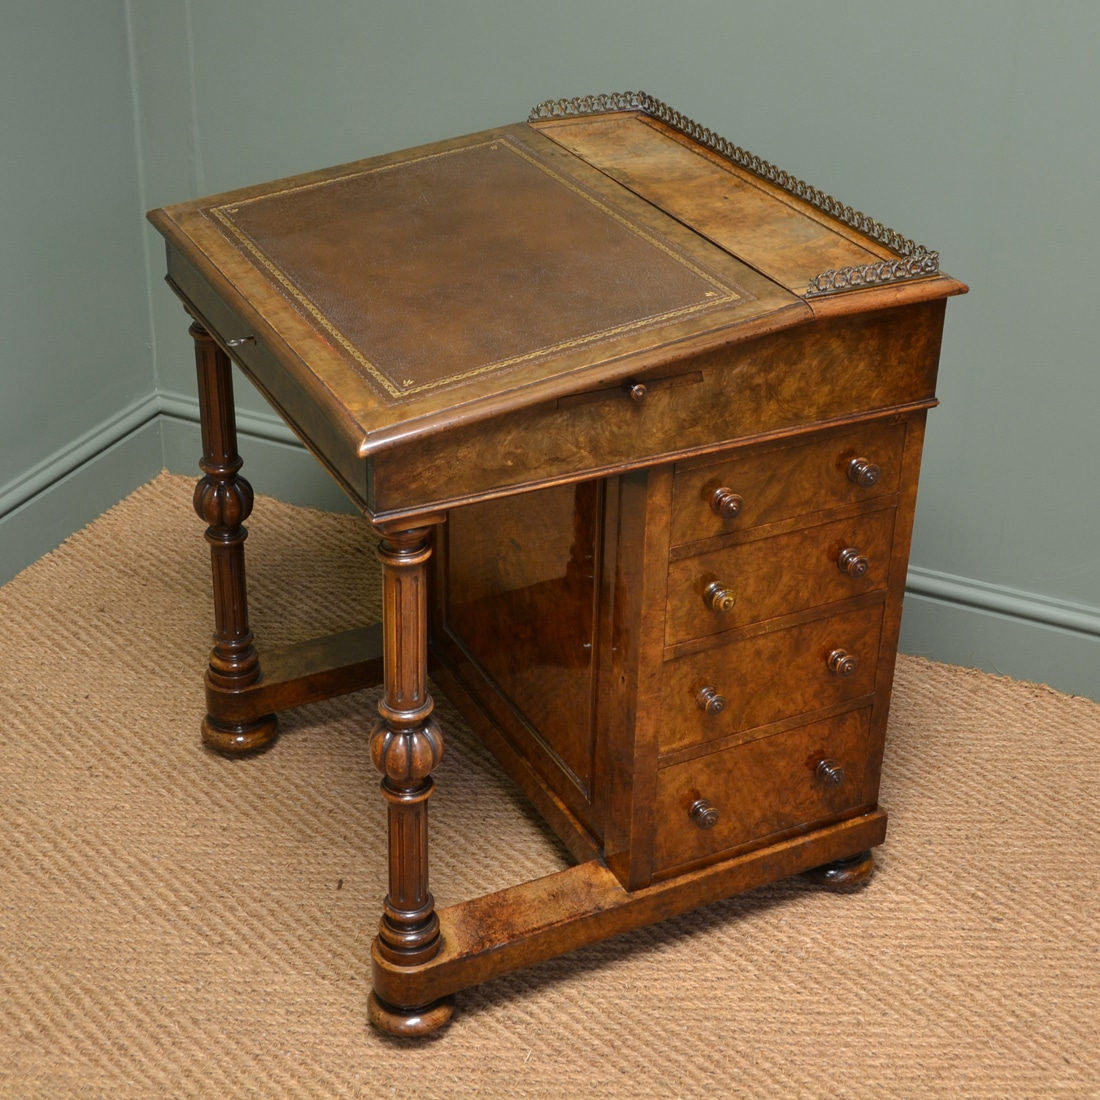 Antique Writing Desk ~ Antique davenport writing desk furniture